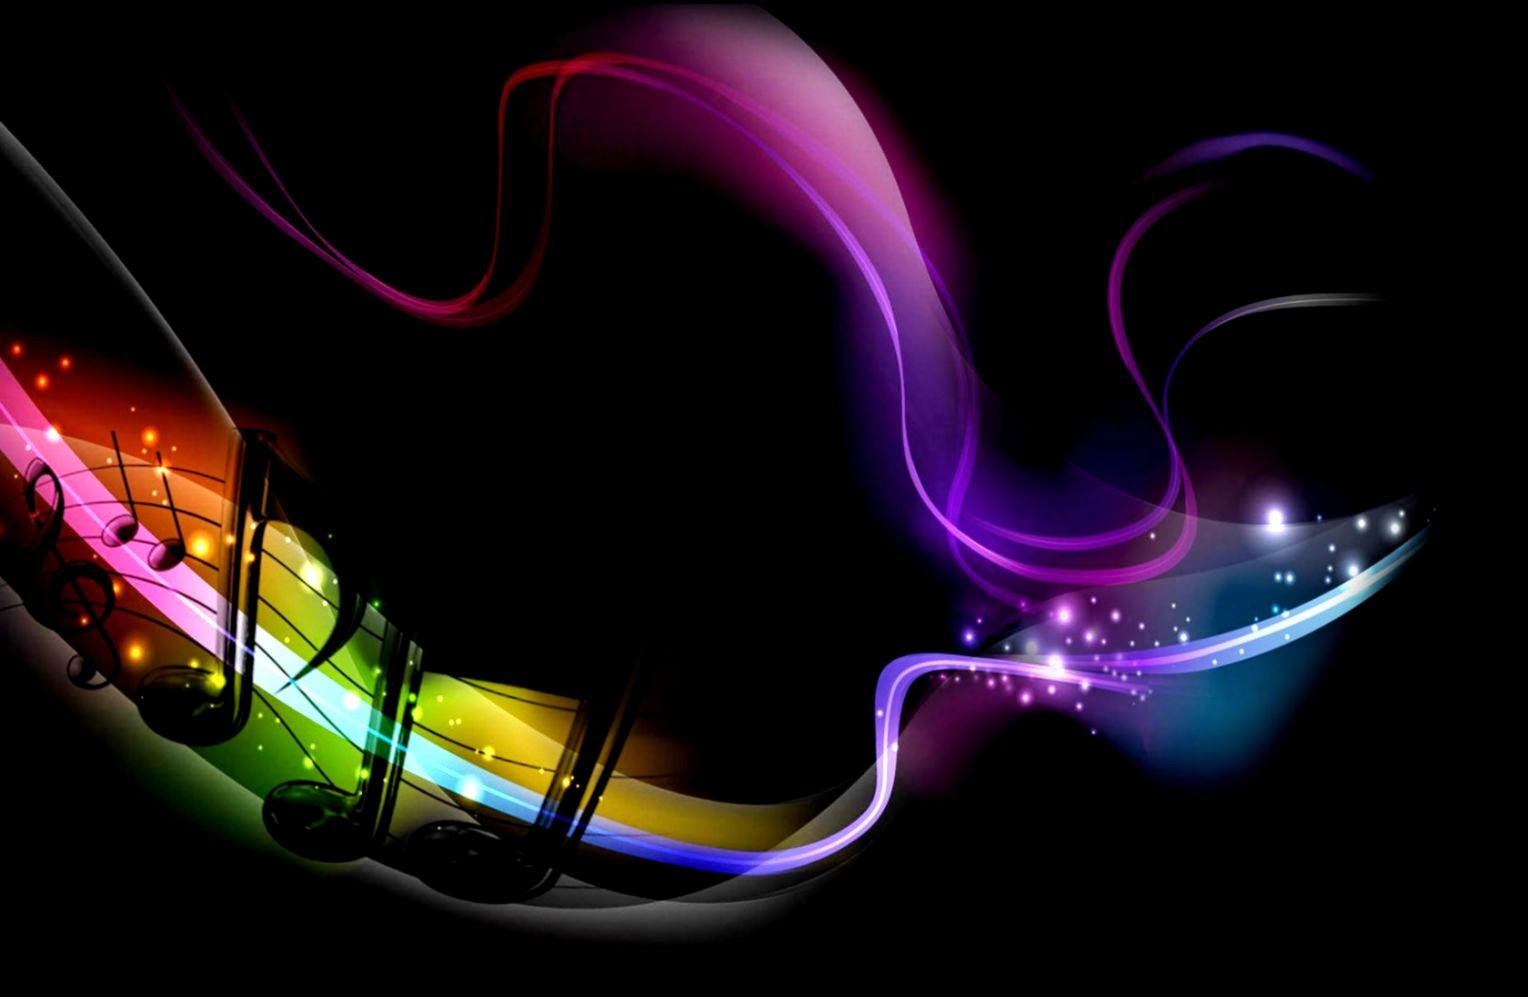 Amazing Music Wallpapers: Colorful Music Wallpapers